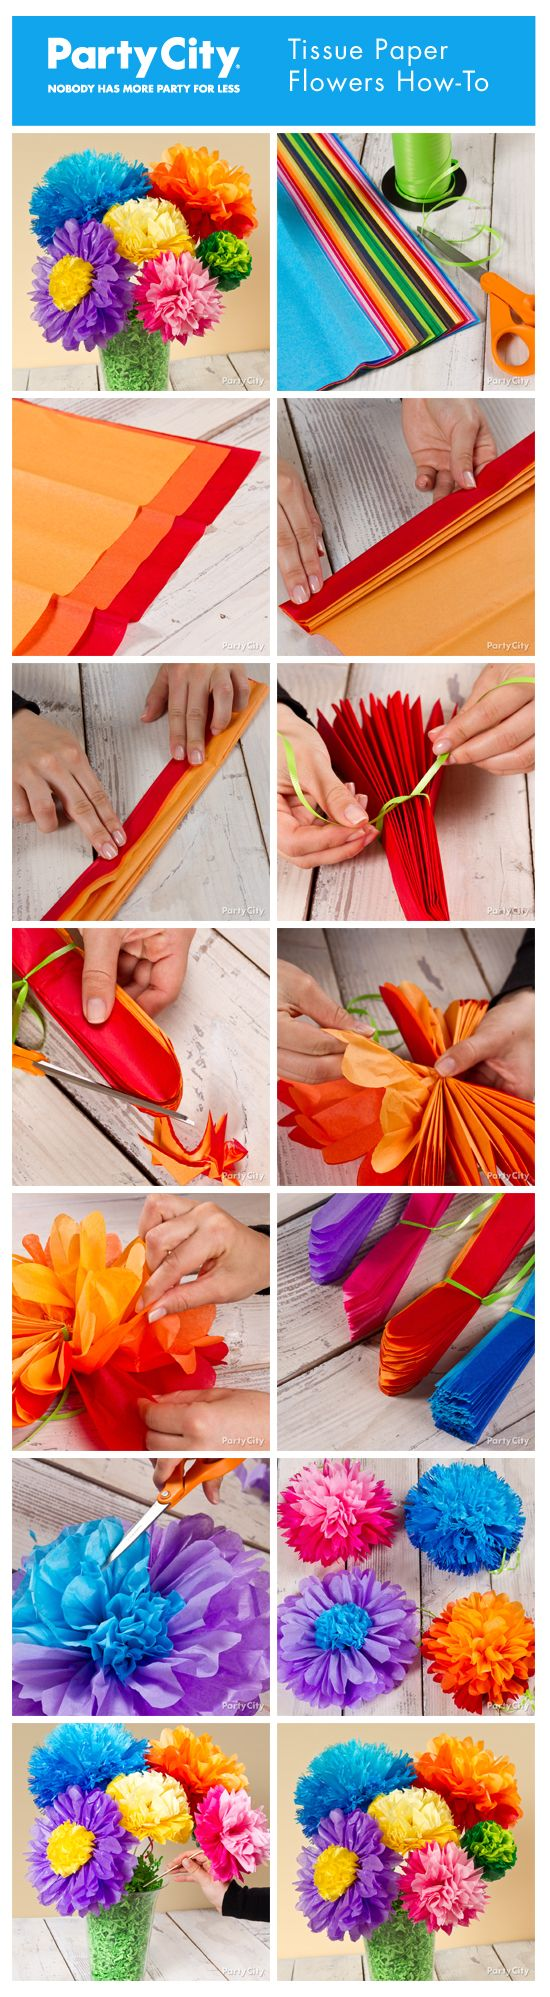 DIY Tutorial: How to make pretty tissue paper flowers. Step-by-step photo tutorial for different sizes and petal shapes